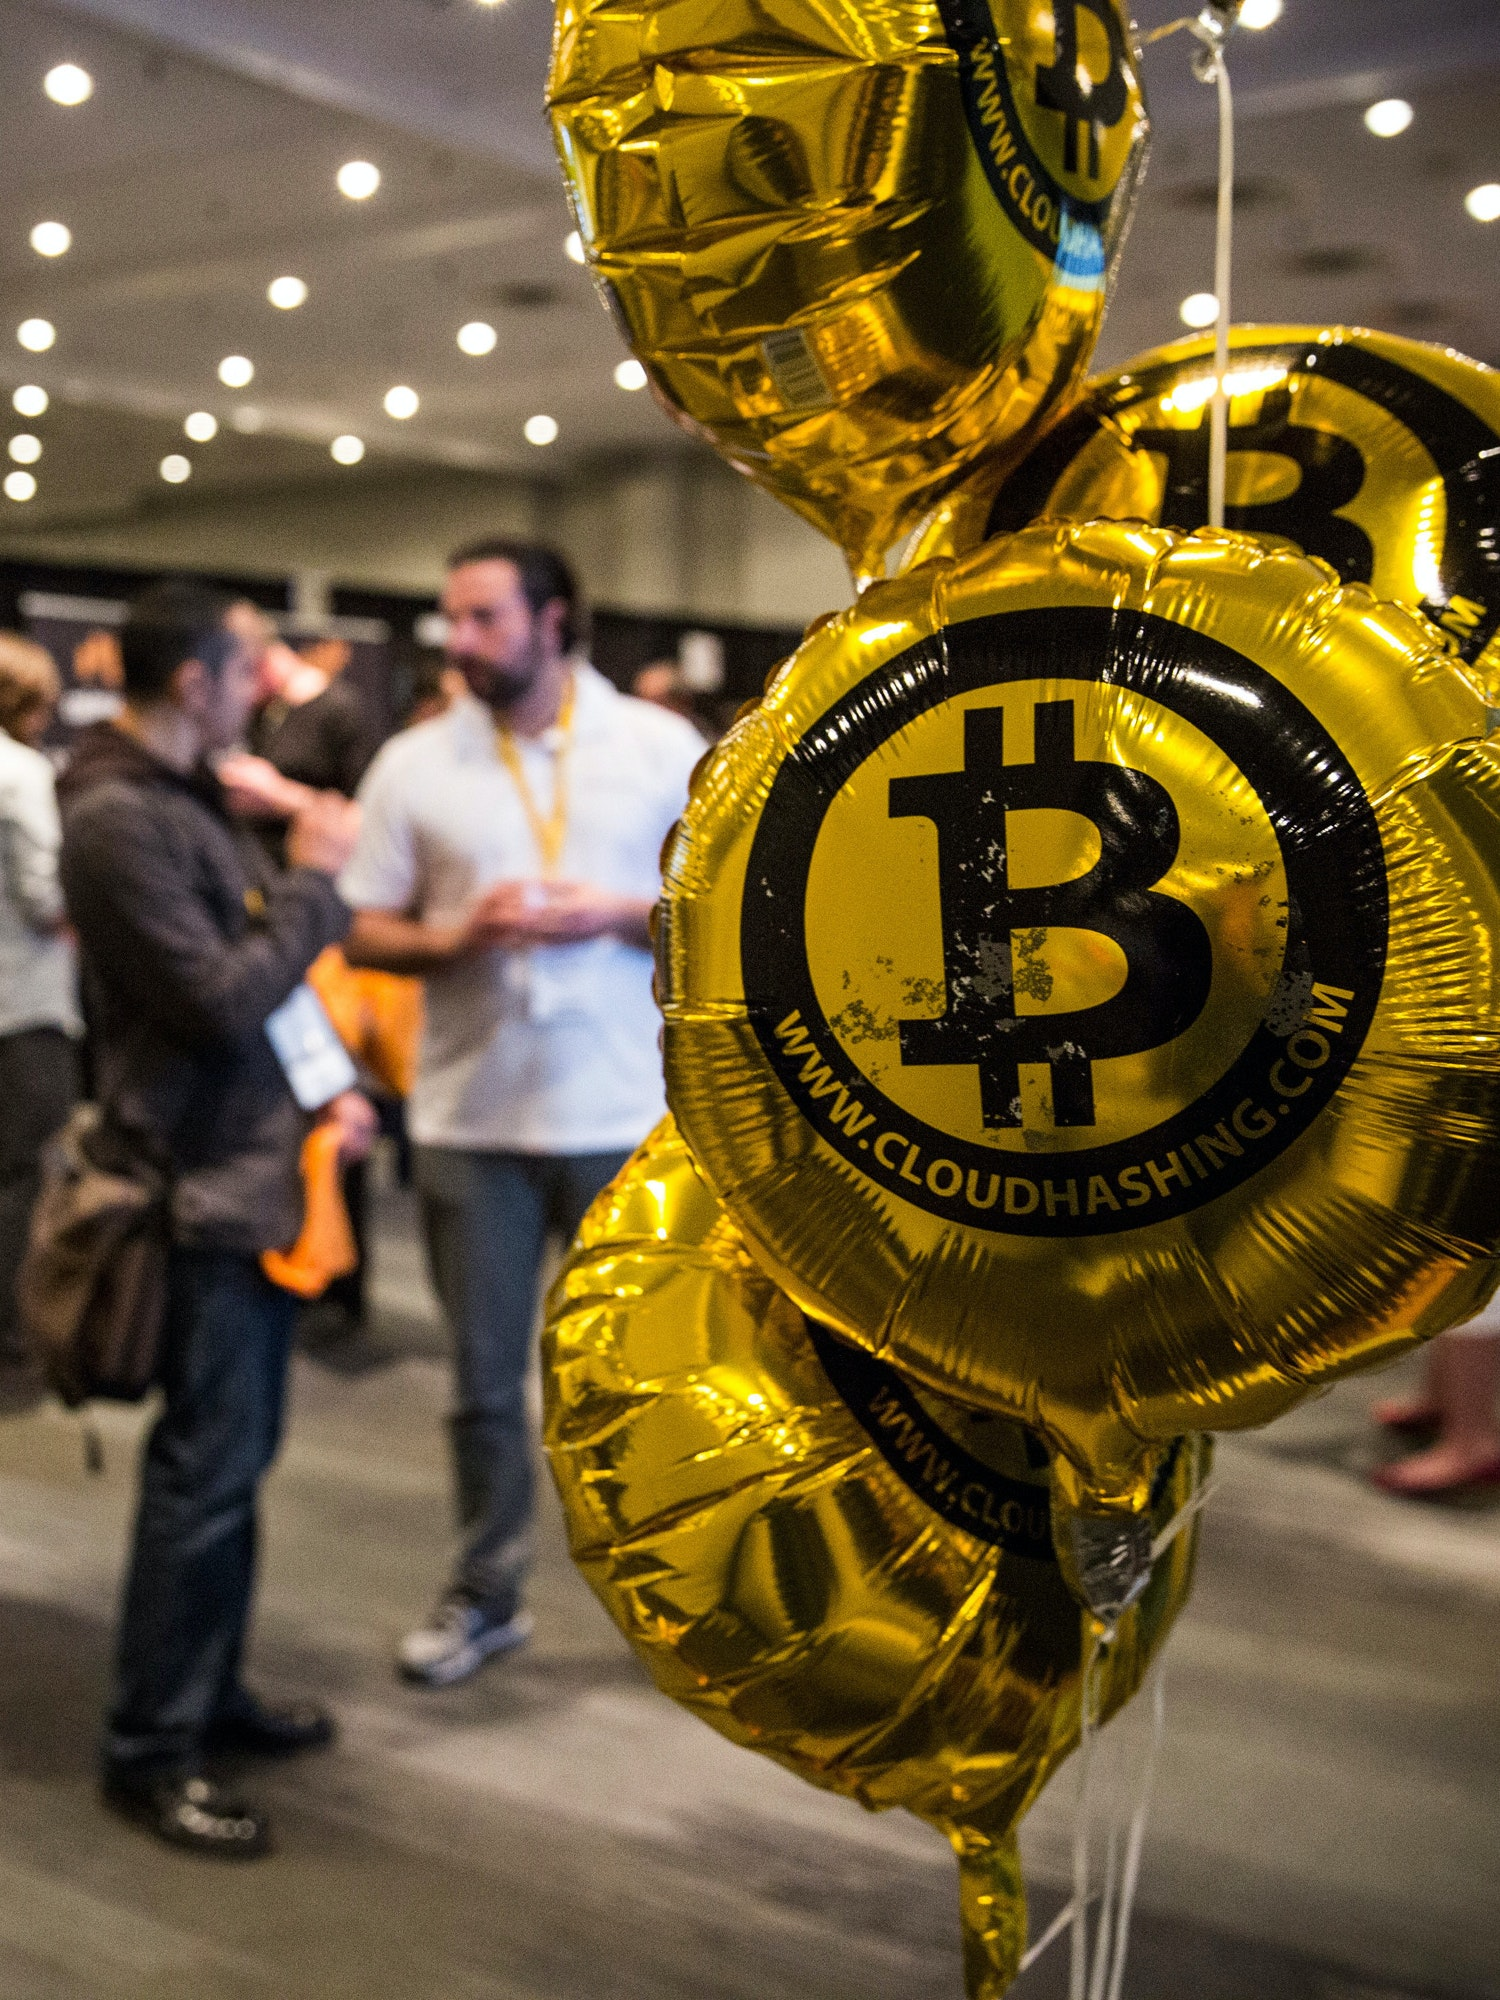 NEW YORK, NY - APRIL 07:  People attend a Bitcoin conference on at the Javits Center April 7, 2014 in New York City. Topics included market places to trade bitcoin, mining hardware to harvest bitcoins and digital wallets to store bitcoins. Bitcoin is one of the most popular of over one hundred digital currencies that have recently come into popularity.  (Photo by Andrew Burton/Getty Images)